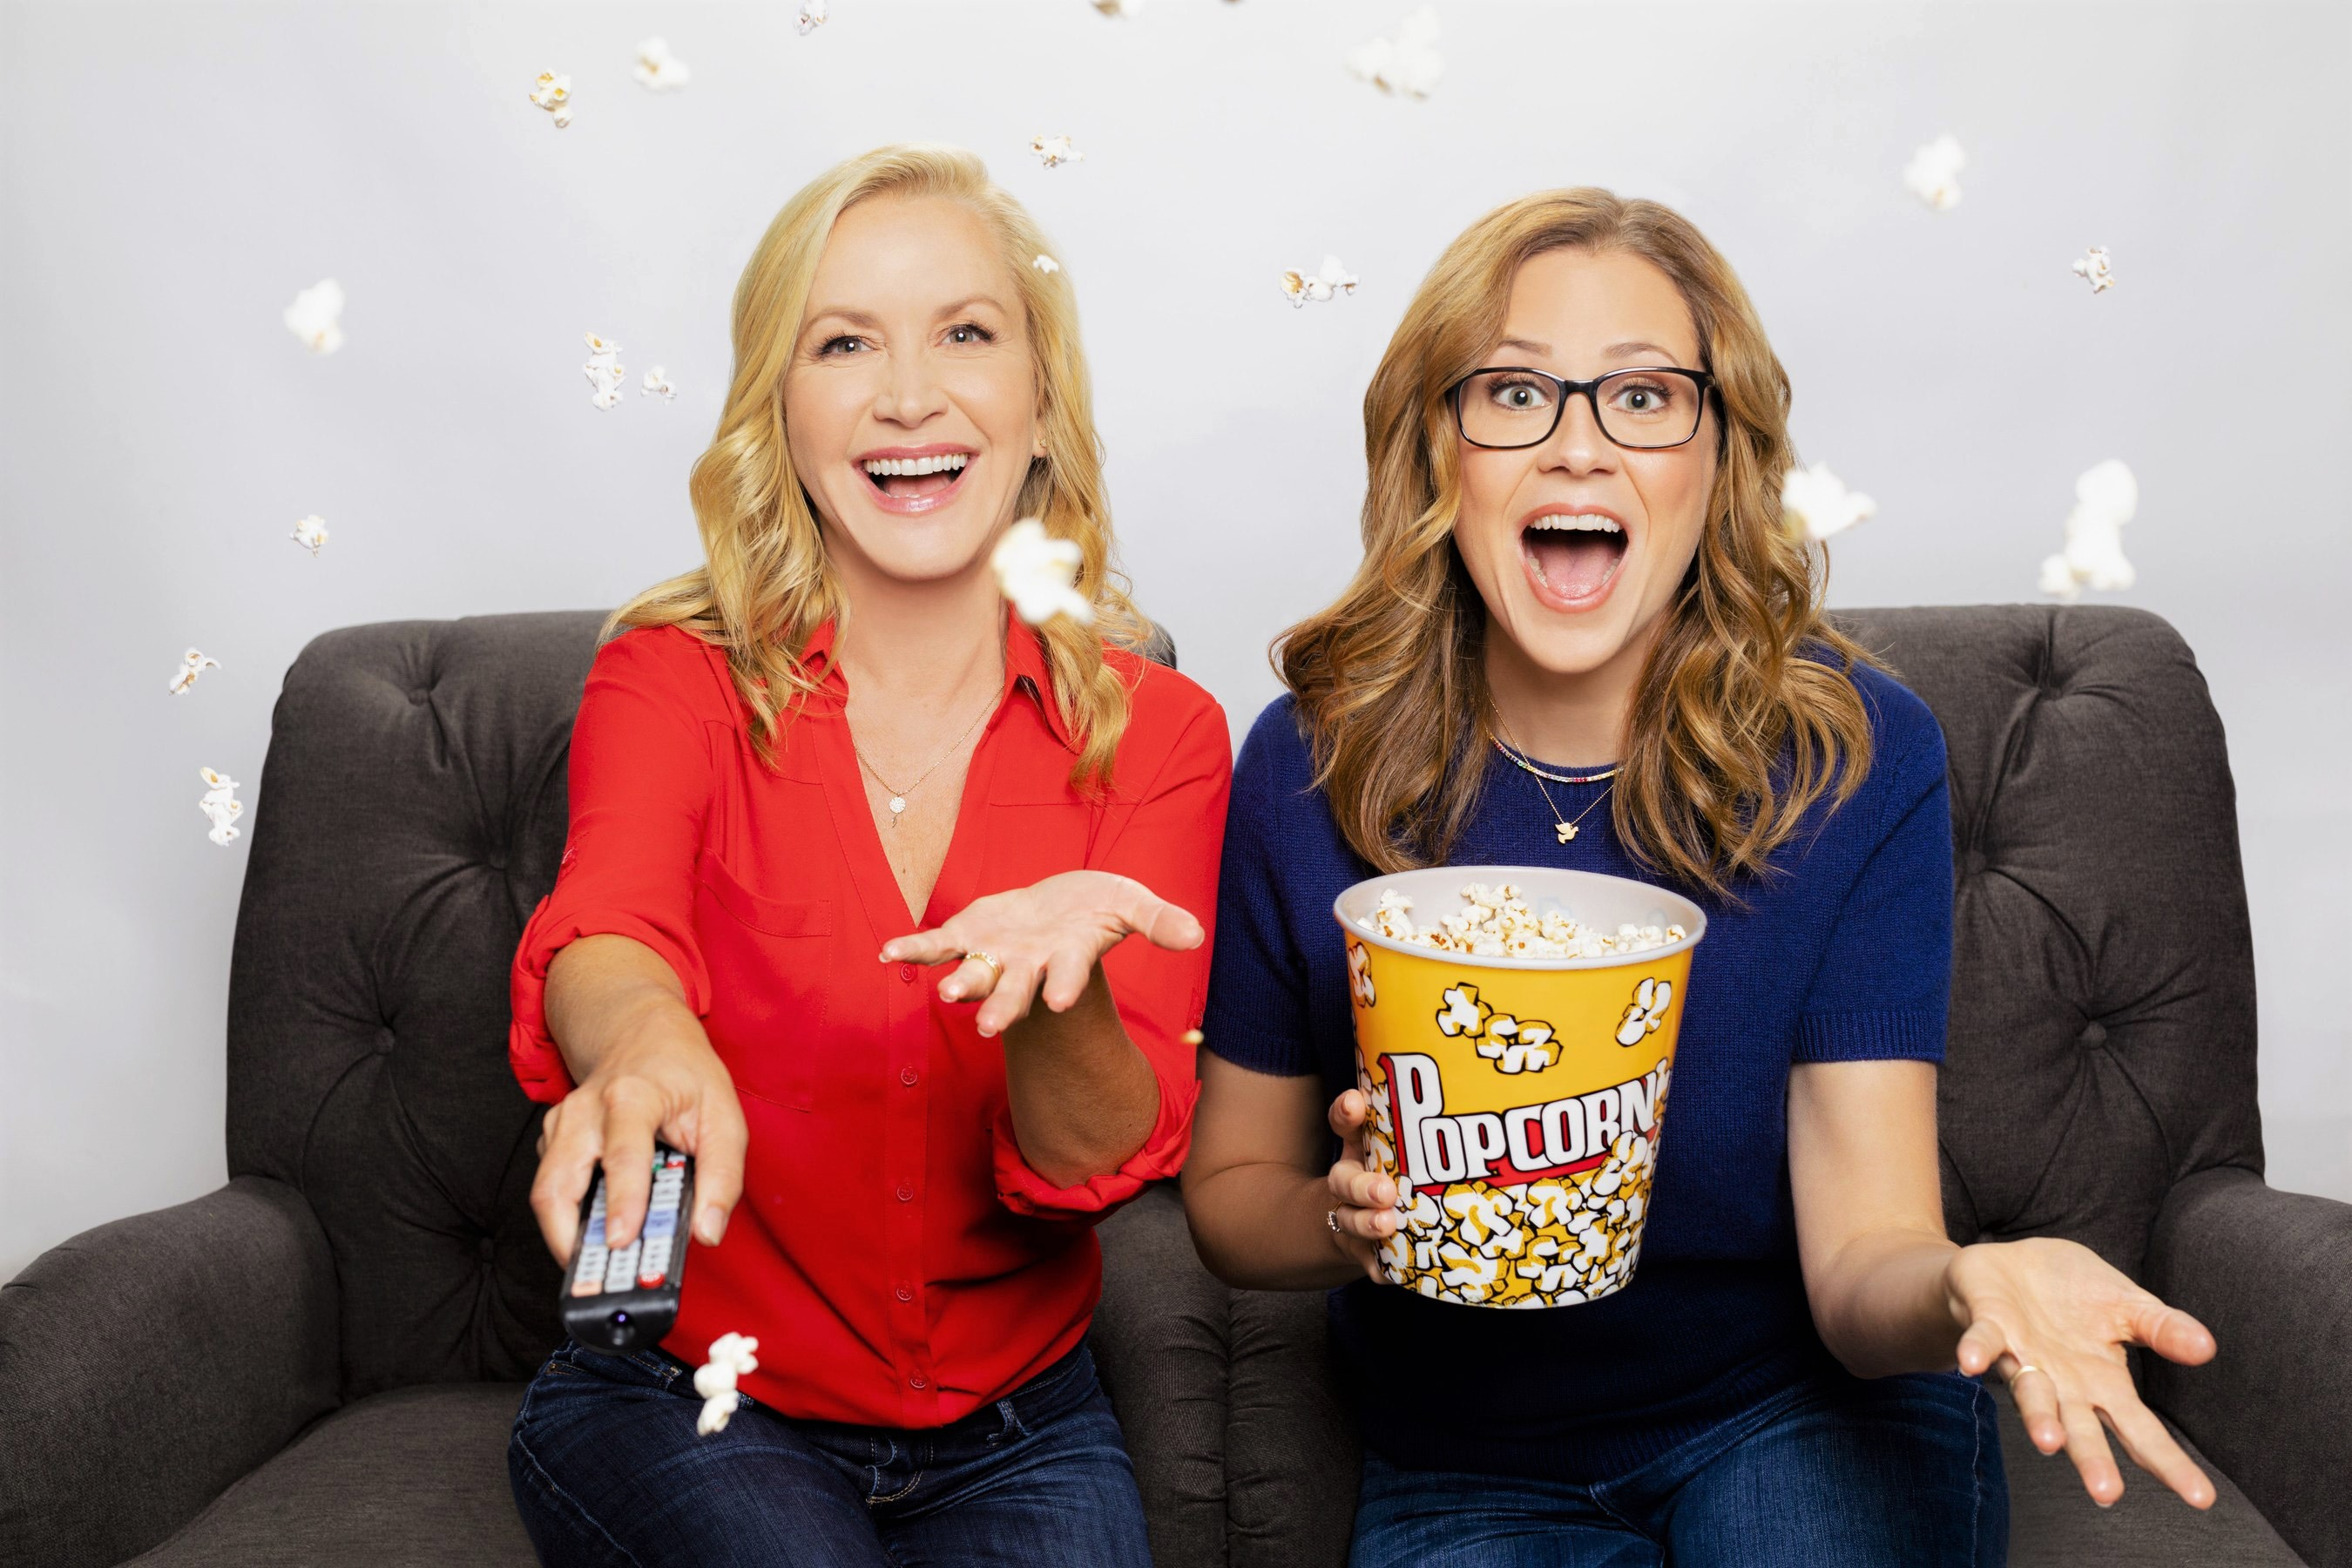 Stitcher Office Ladies Angela Kinsey and Jenna Fischer Throwing Popcorn